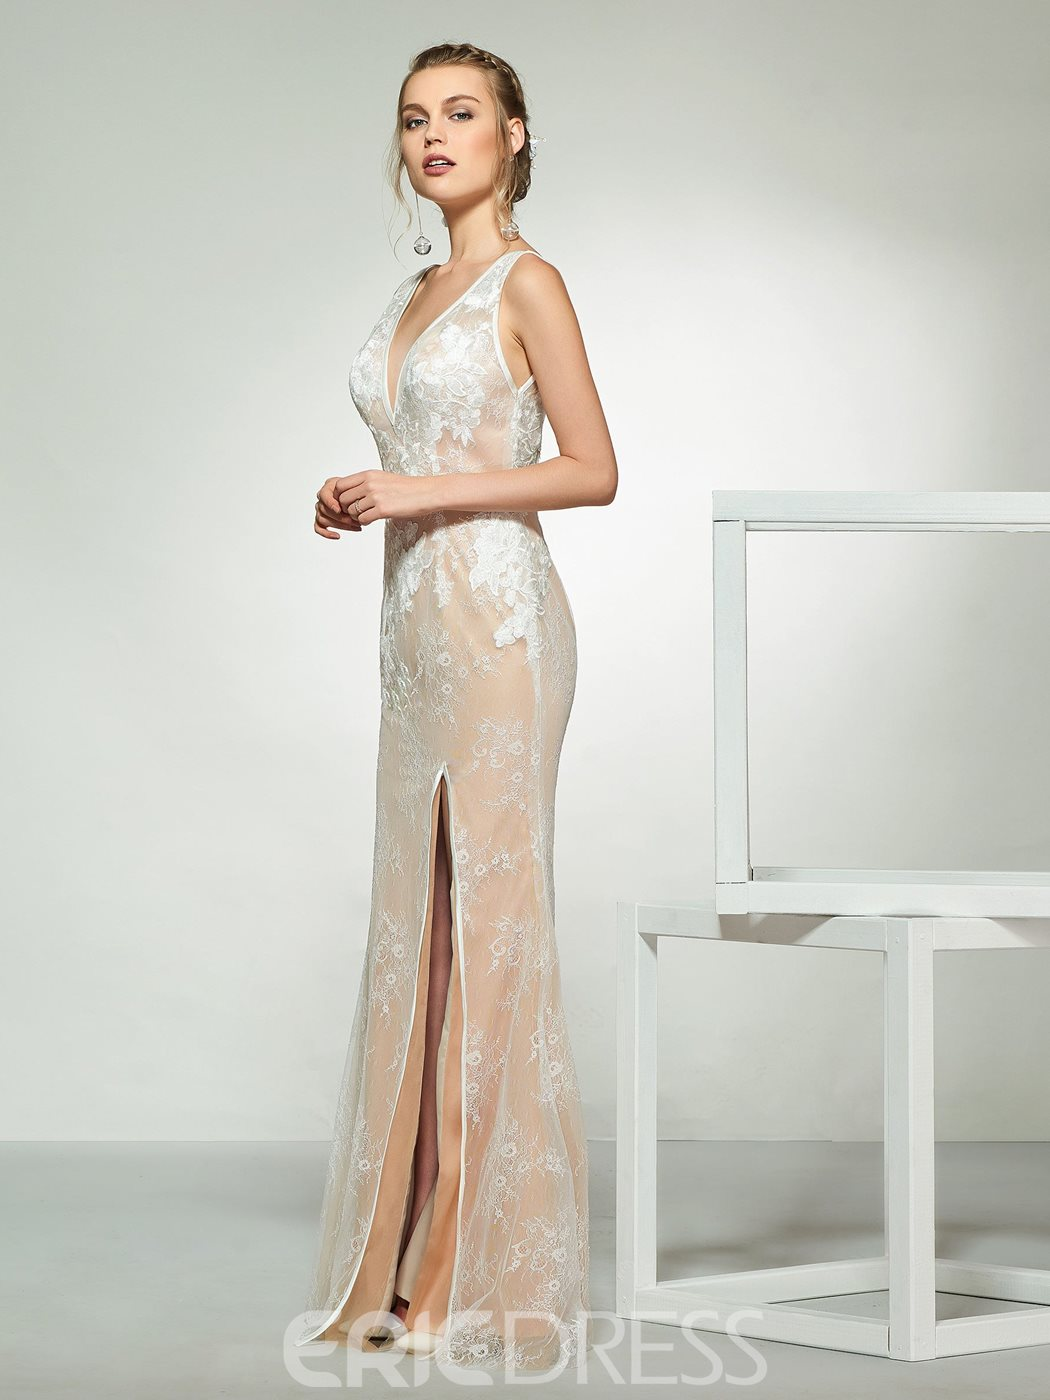 8684c286 Ericdress Lace Sheath Wedding Dress with Cape 13769035 - Ericdress.com